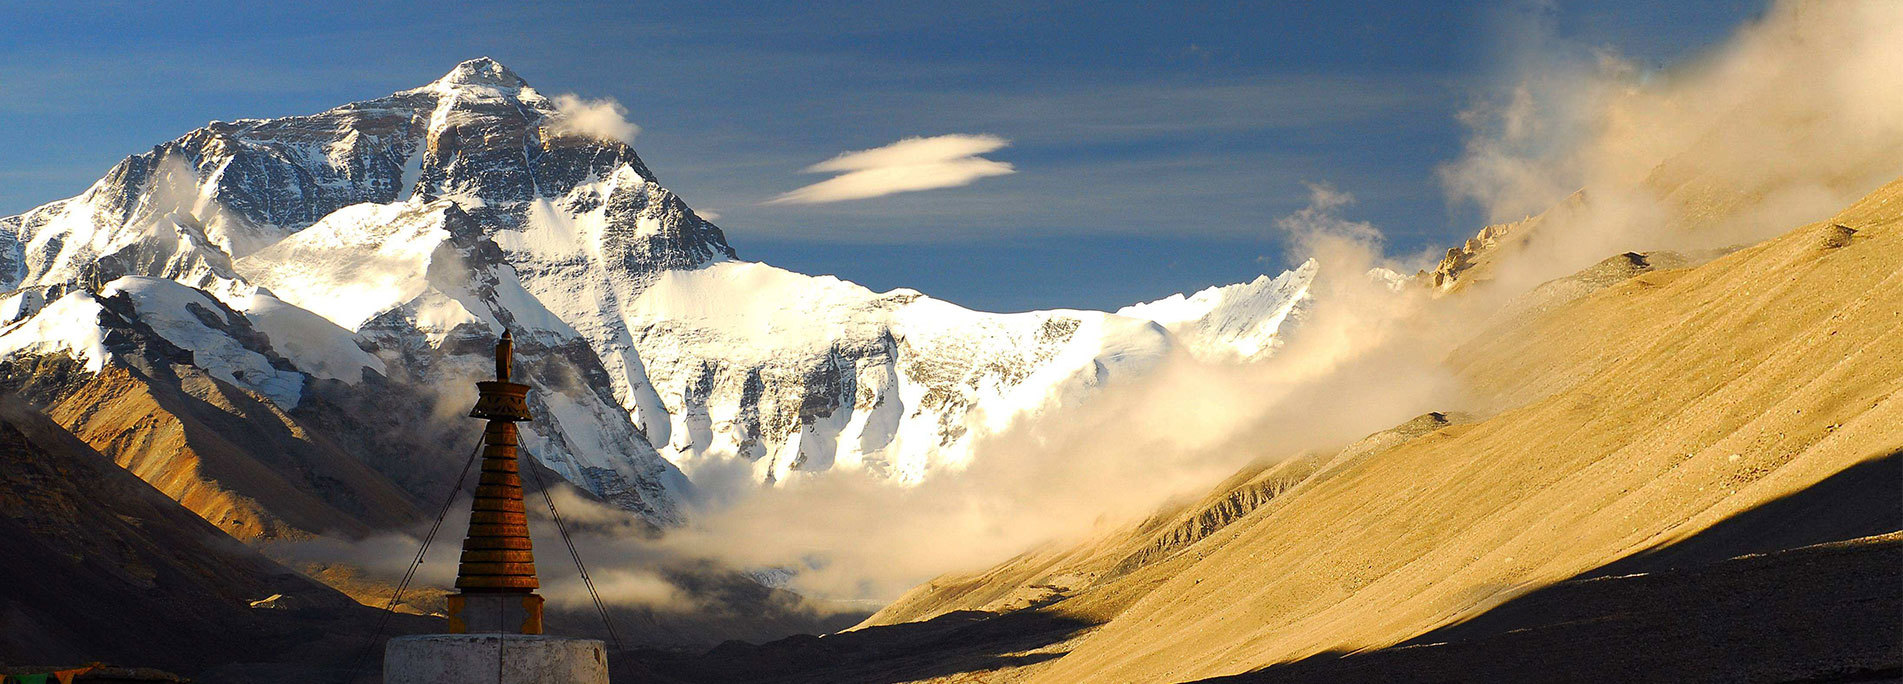 Best place for taking photos of Mt.Everest.